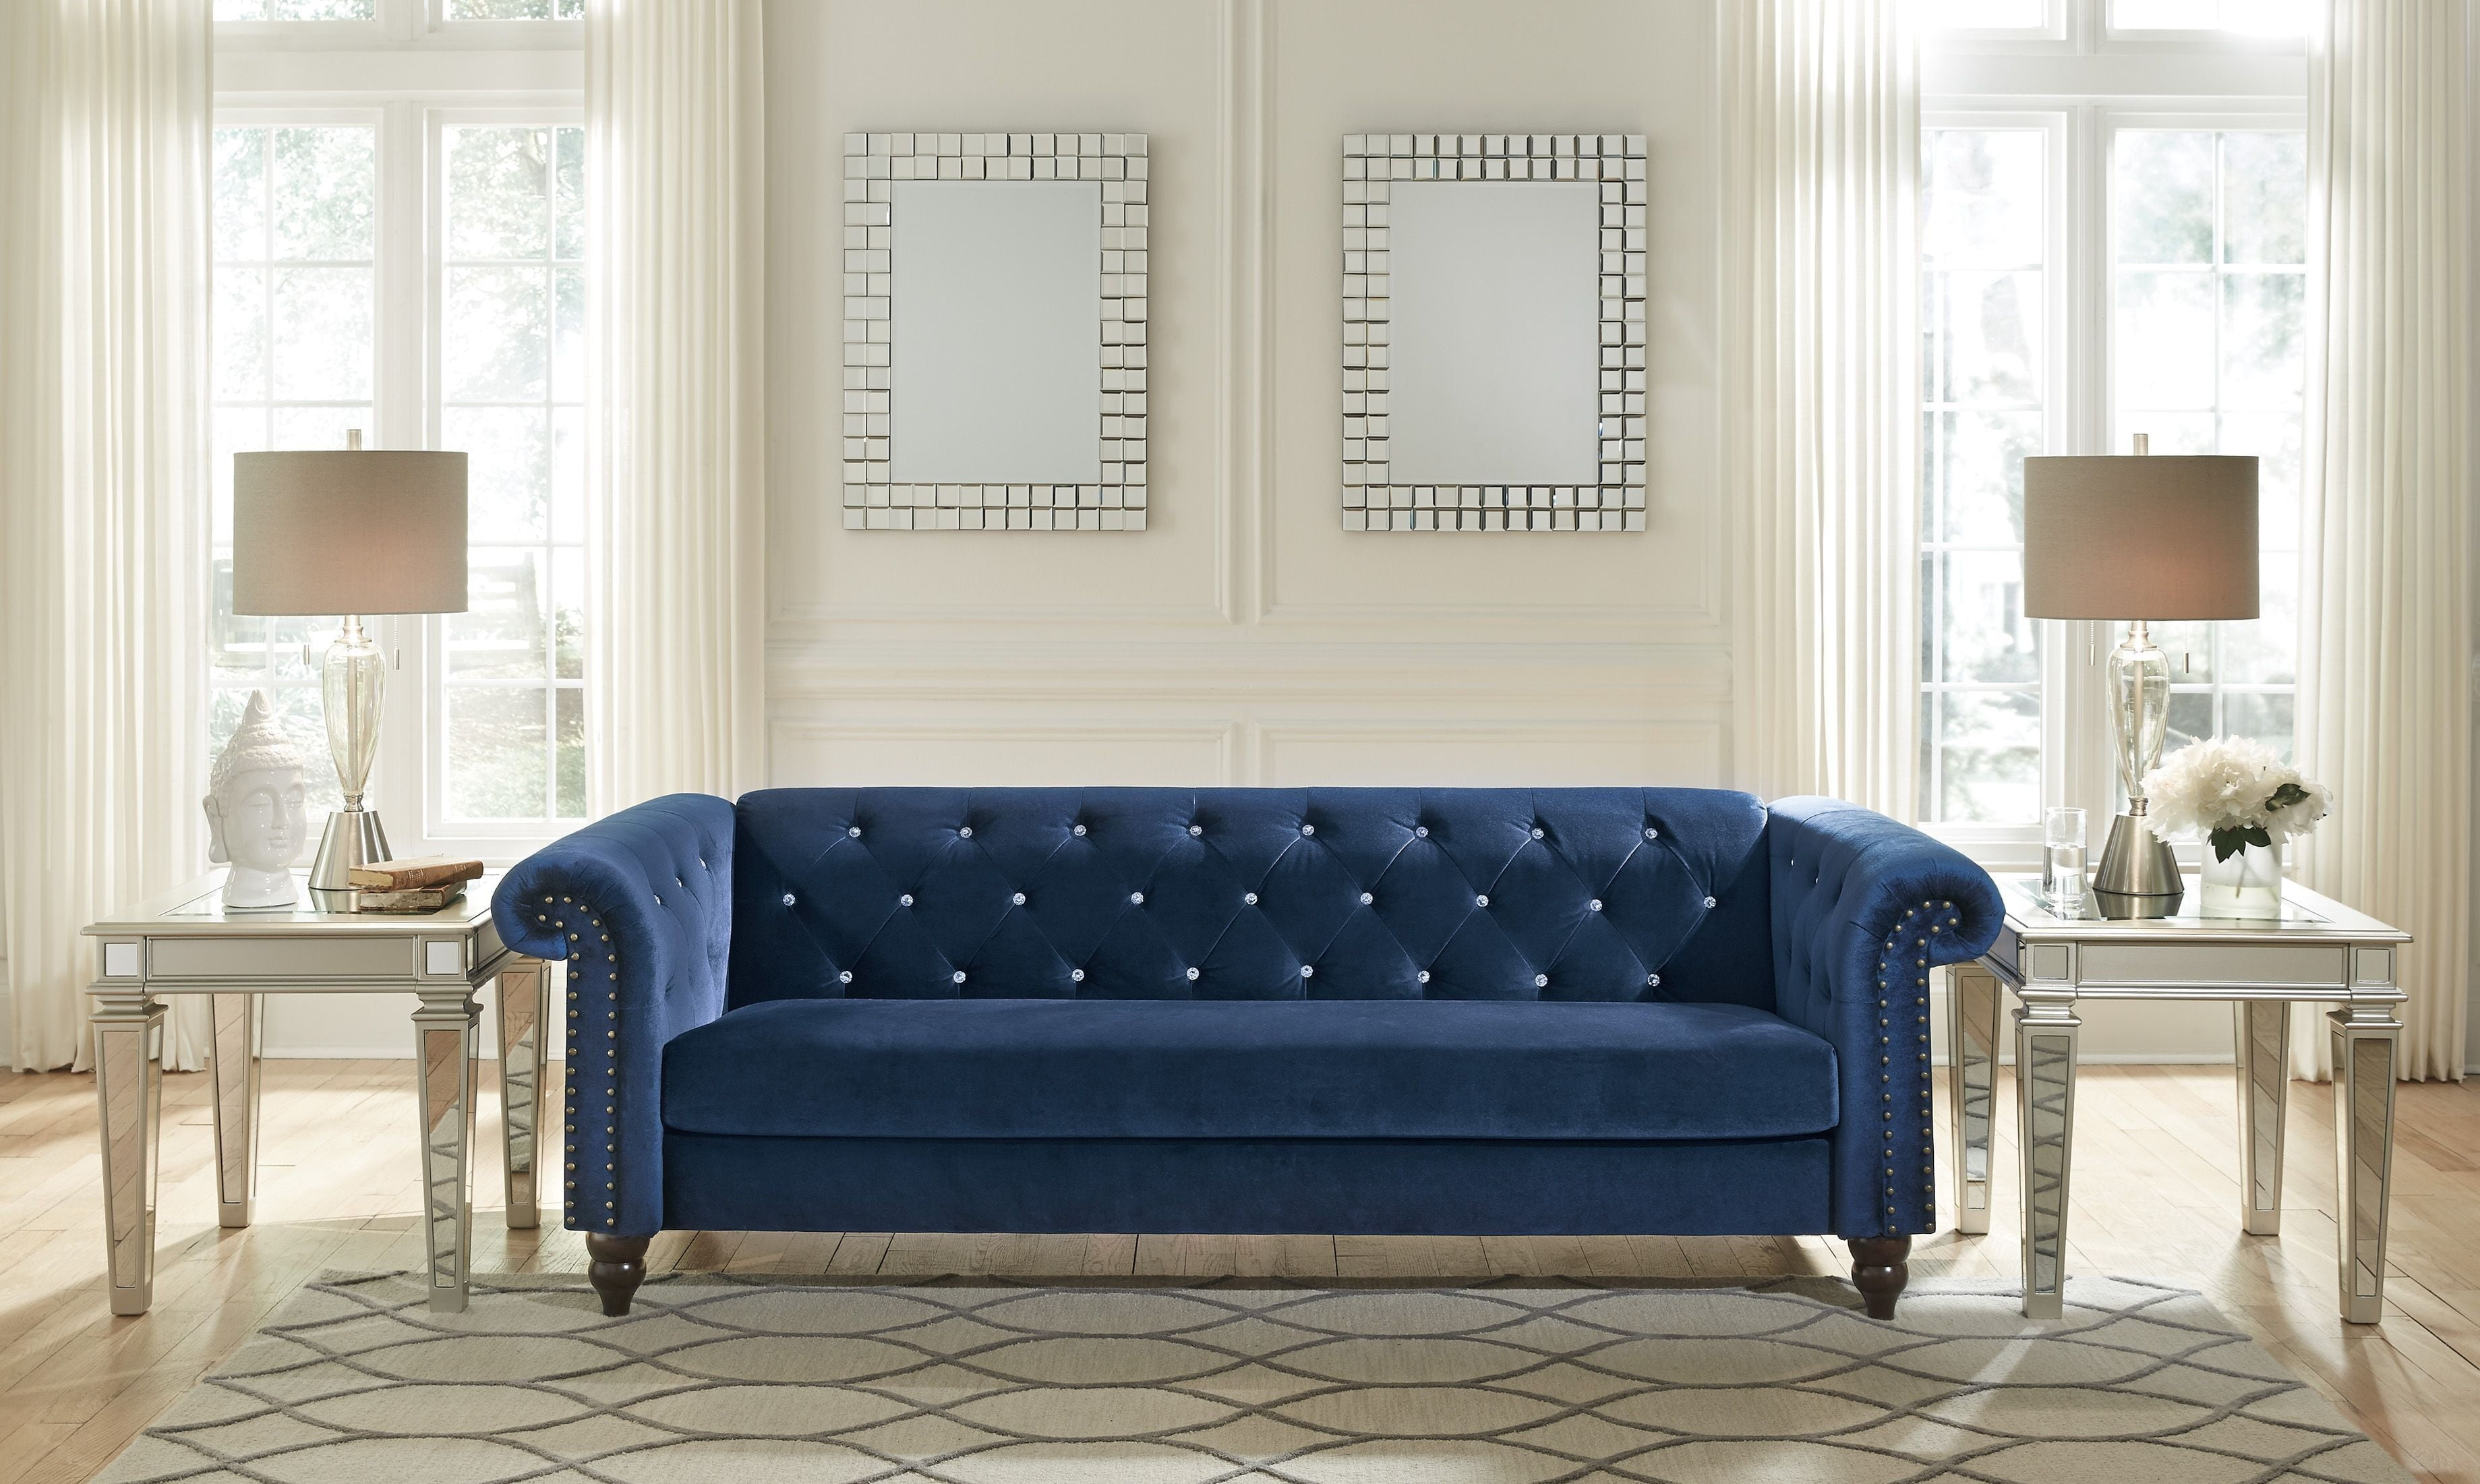 Malchin Blue Living Room Set from Ashley | Coleman Furniture